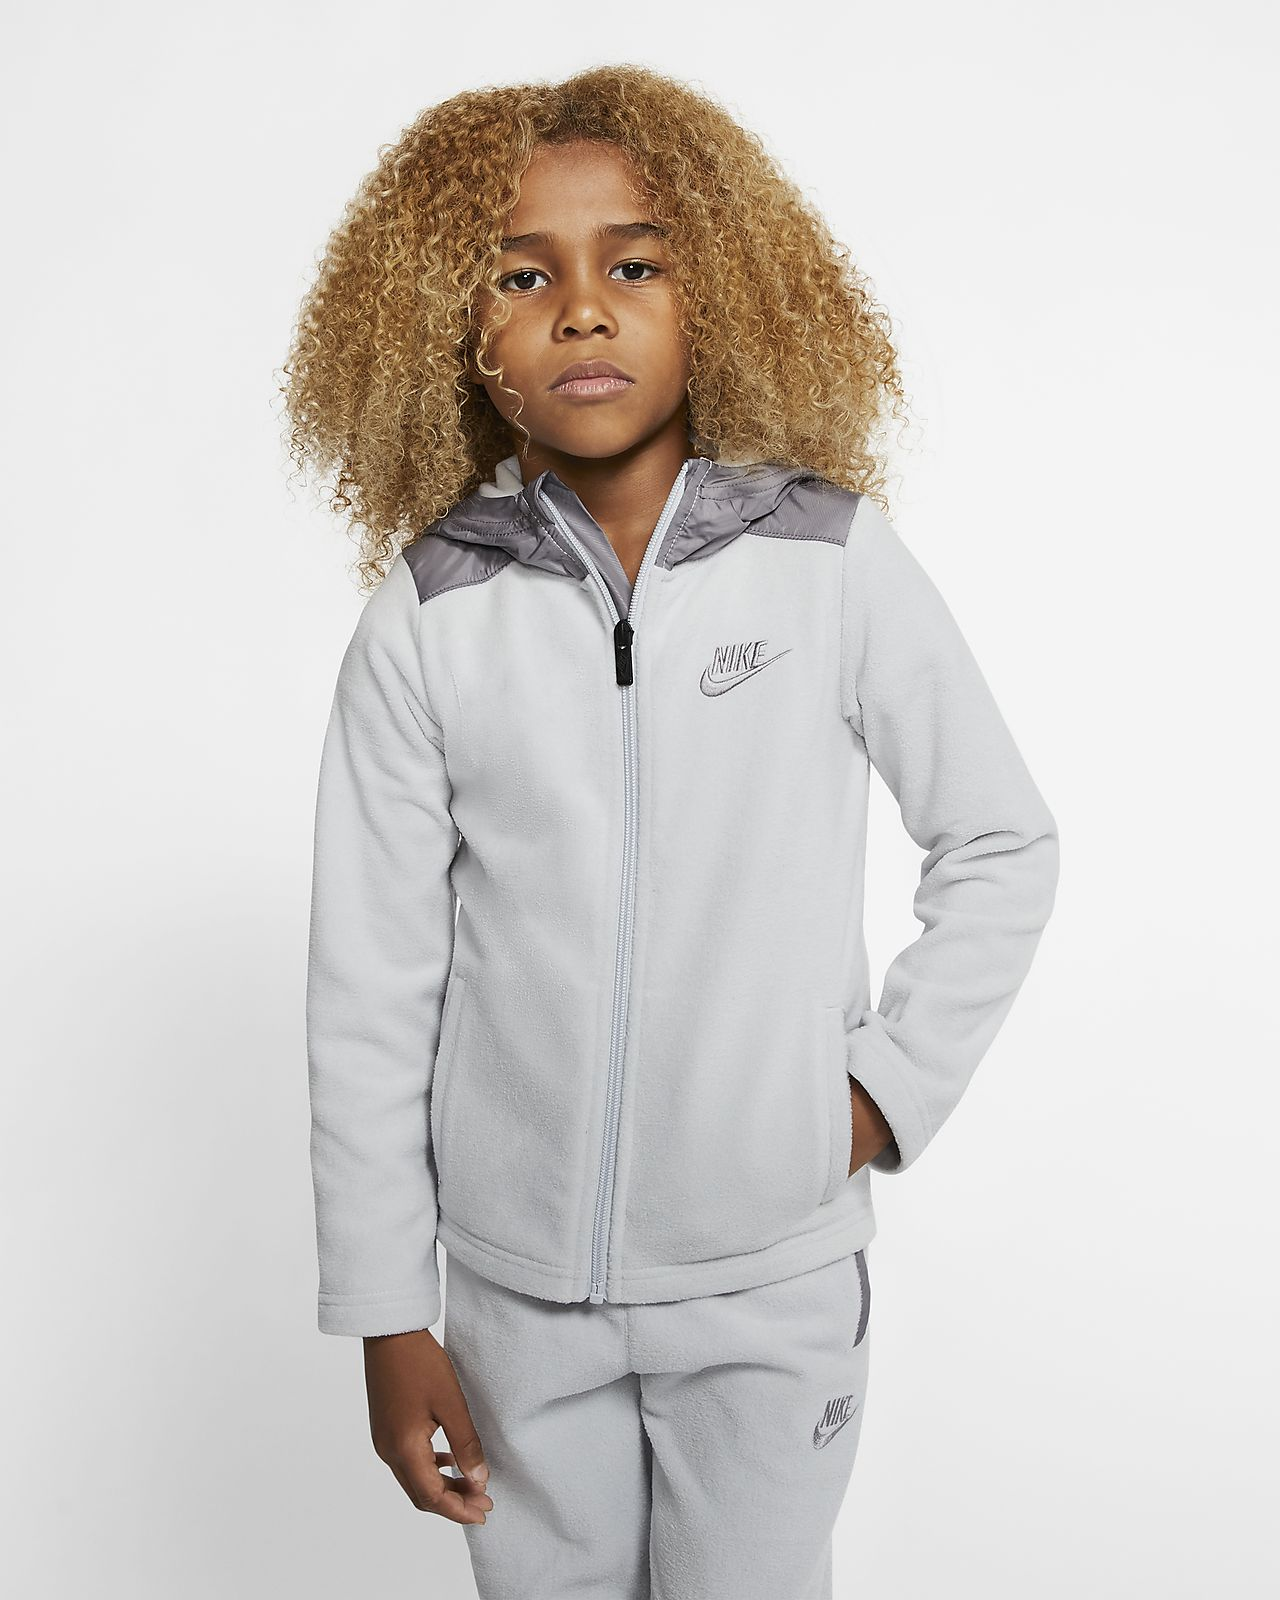 Nike Dri-FIT Little Kids' Winterized Full-Zip Hoodie